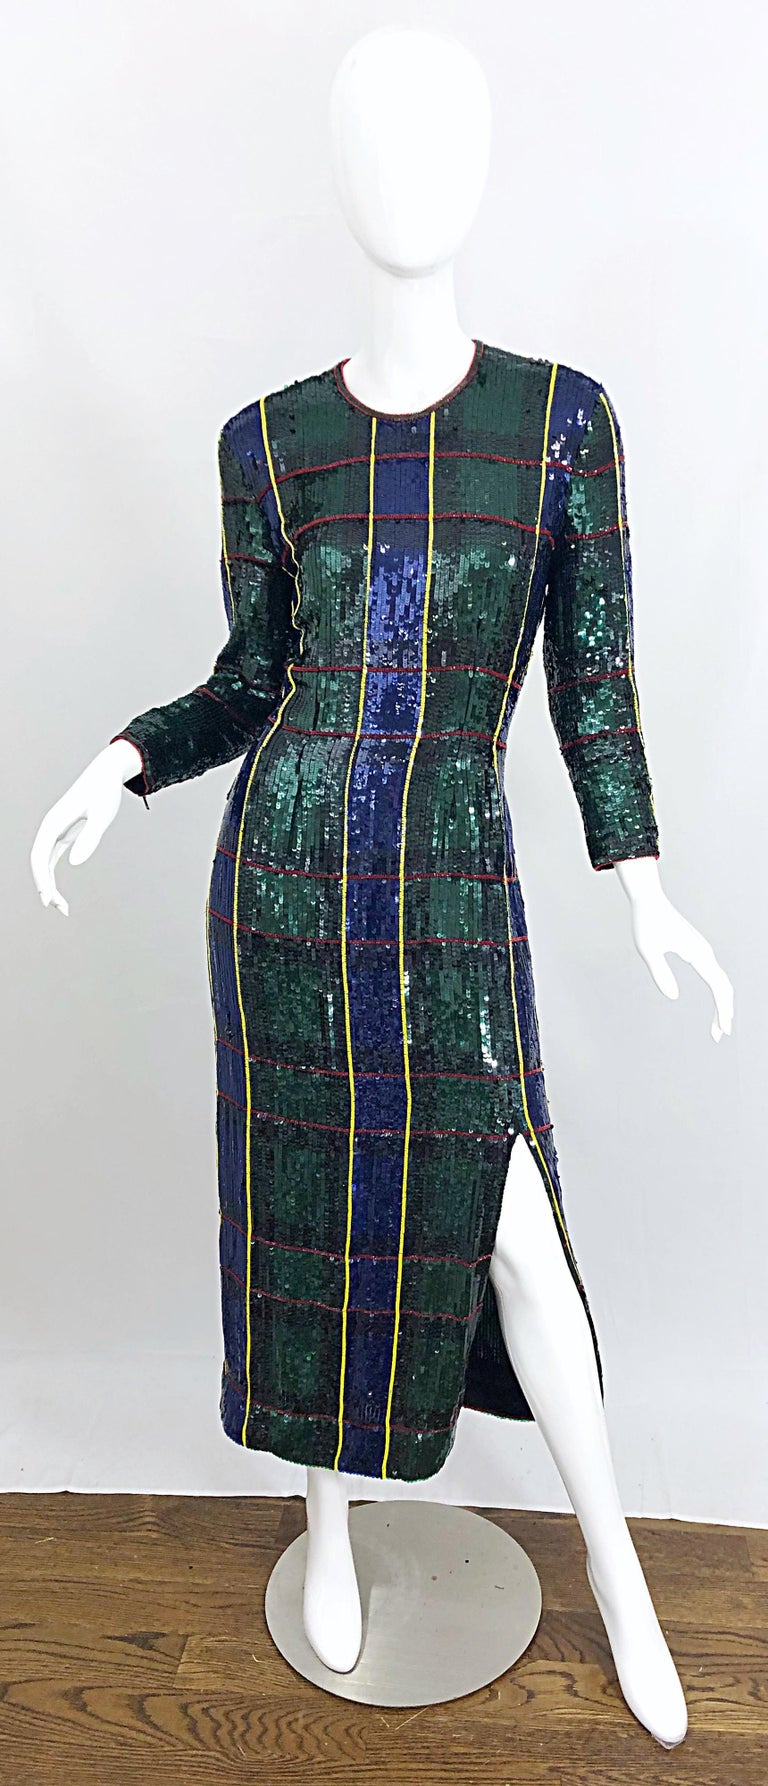 Beautiful vintage 90s ESCADA COUTURE fully sequined tartan plaid silk evening gown! Features a vibrant hunter green, navy blue, yellow and red plaid pattern throughout the entire dress. Thousands of hand-sewn sequins. Tailored long sleeves have